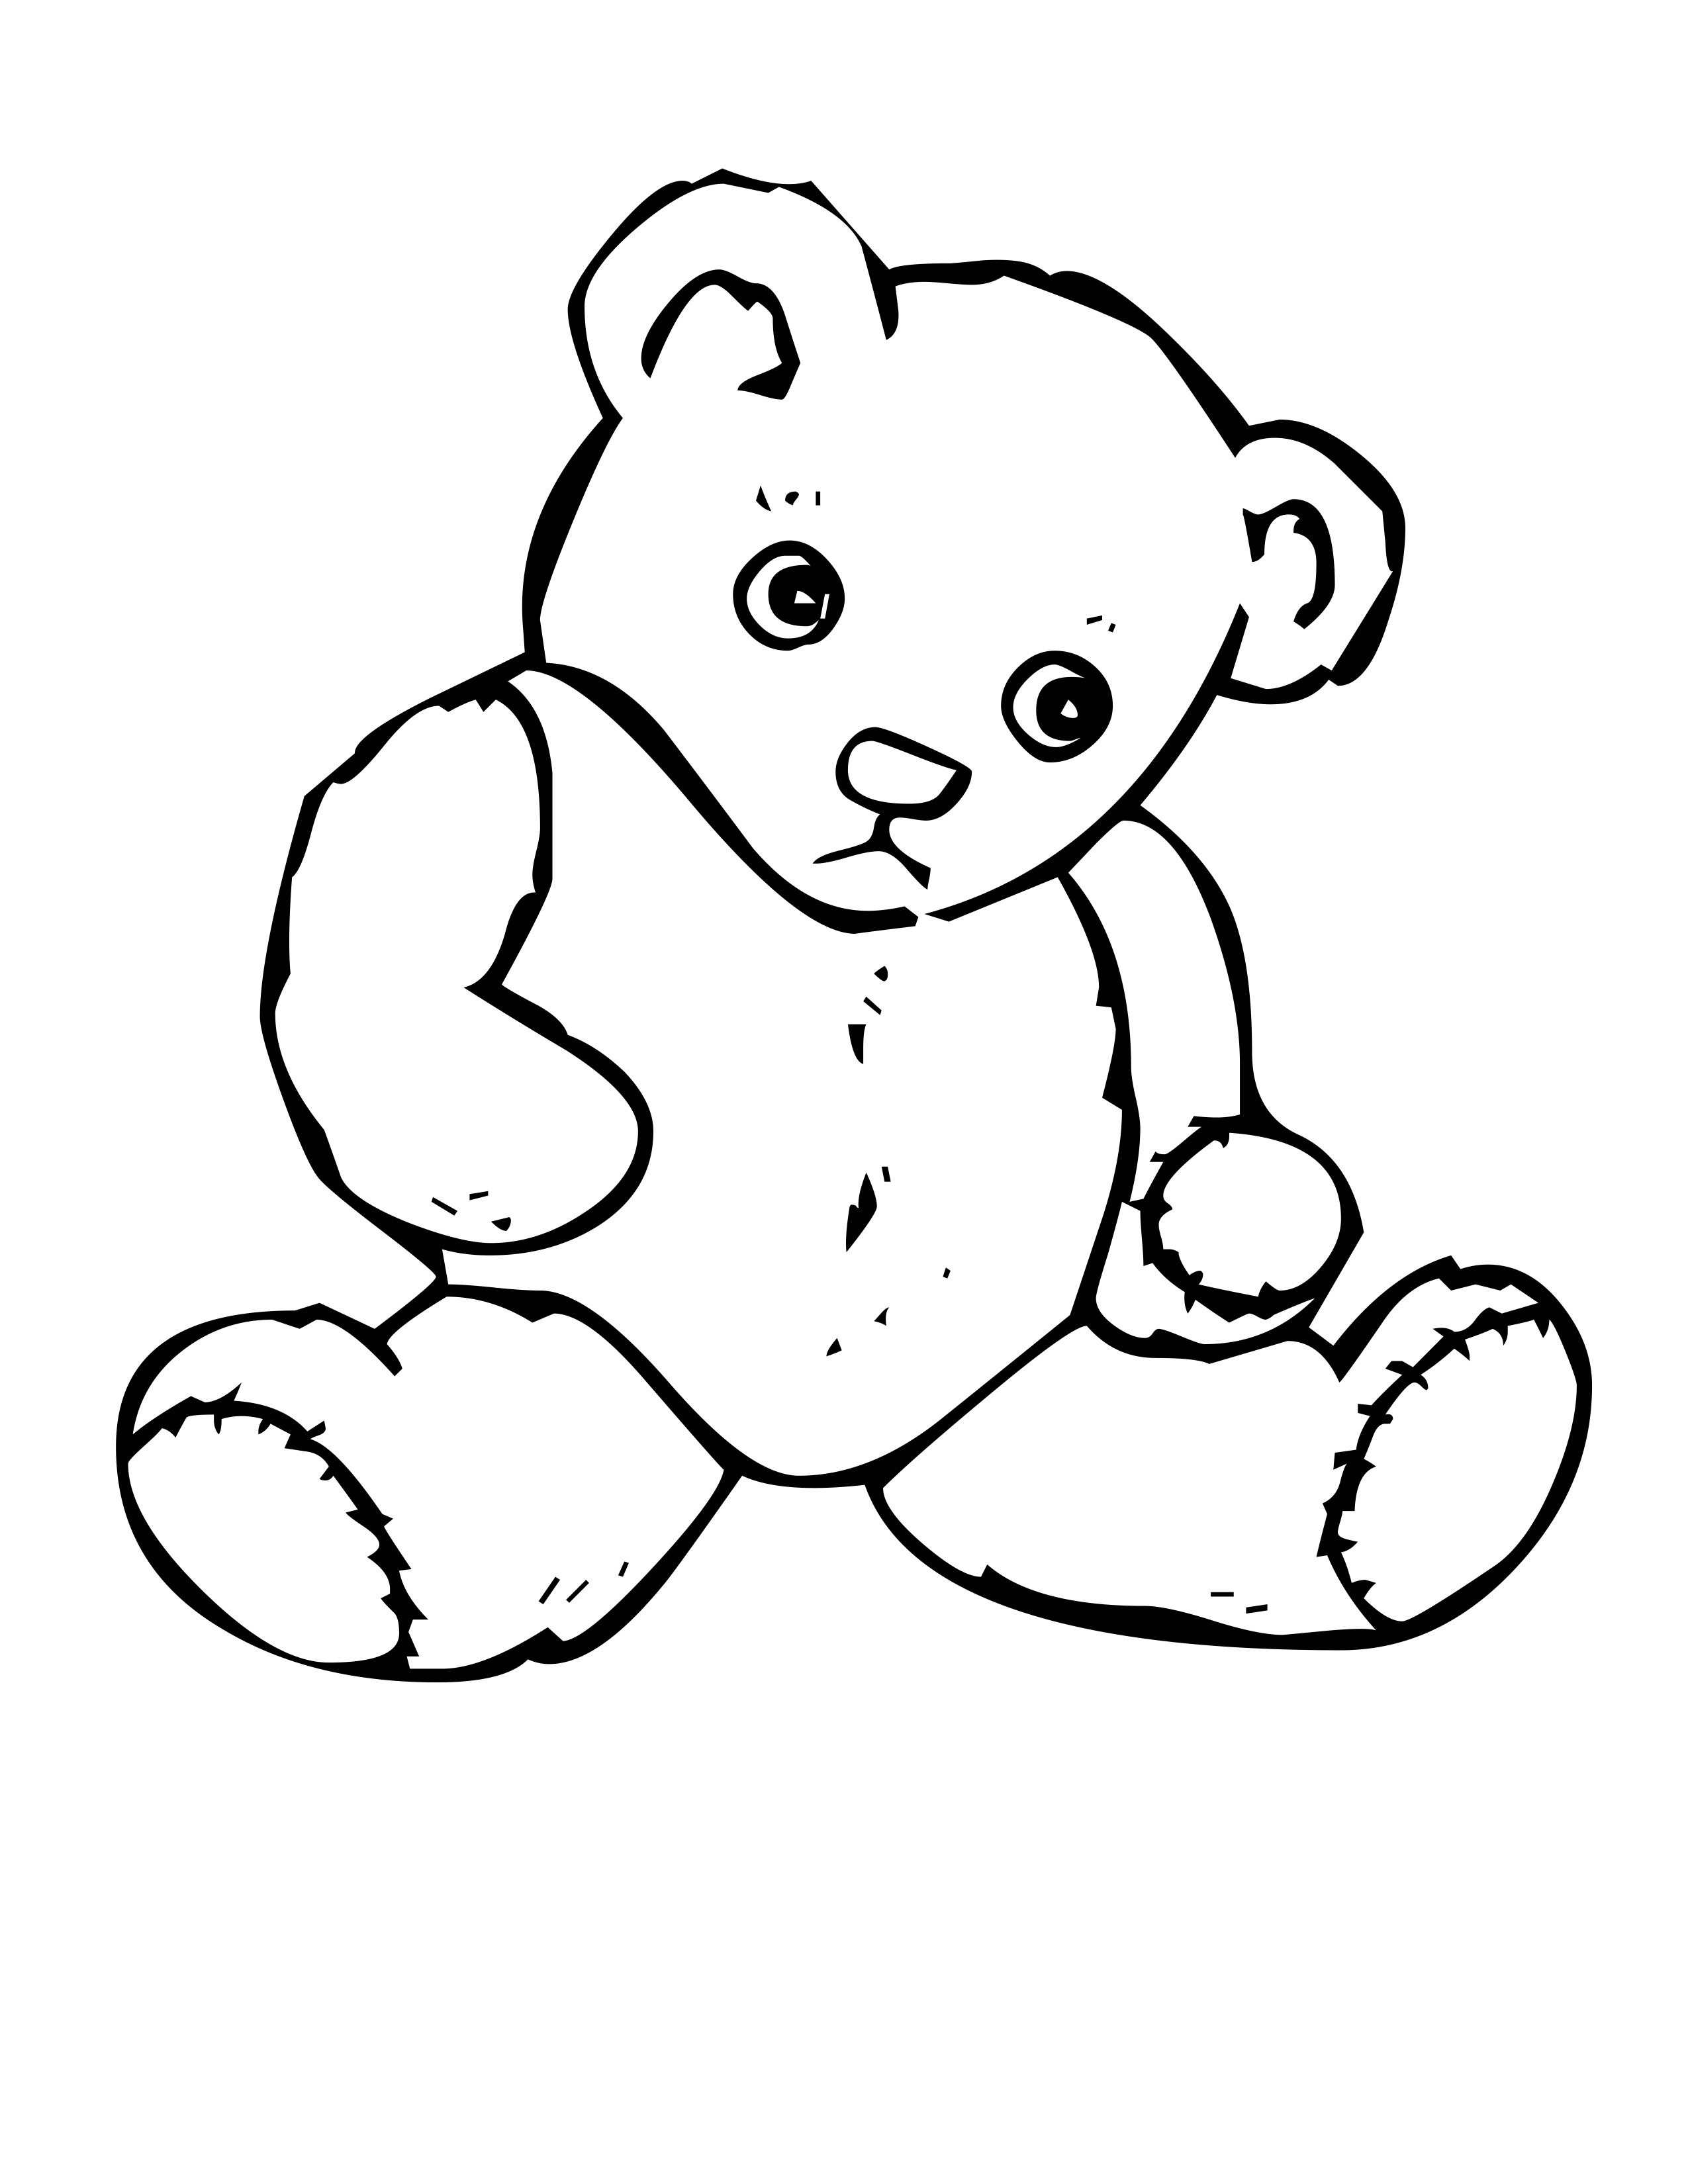 52 Coloring Pages For Bears Images & Pictures In HD